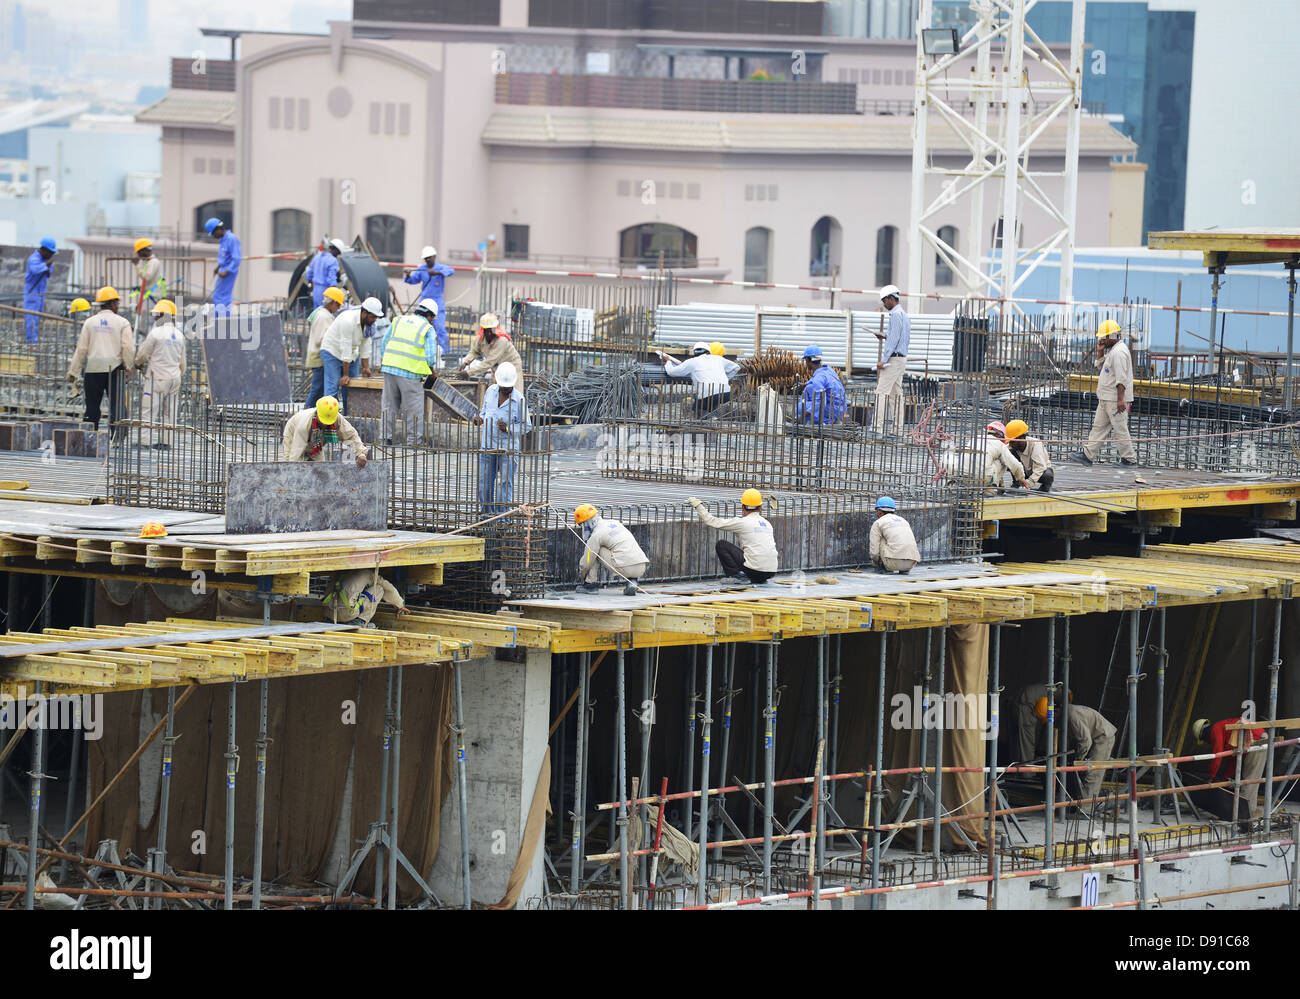 dubai construction work photos dubai construction work images alamy. Black Bedroom Furniture Sets. Home Design Ideas